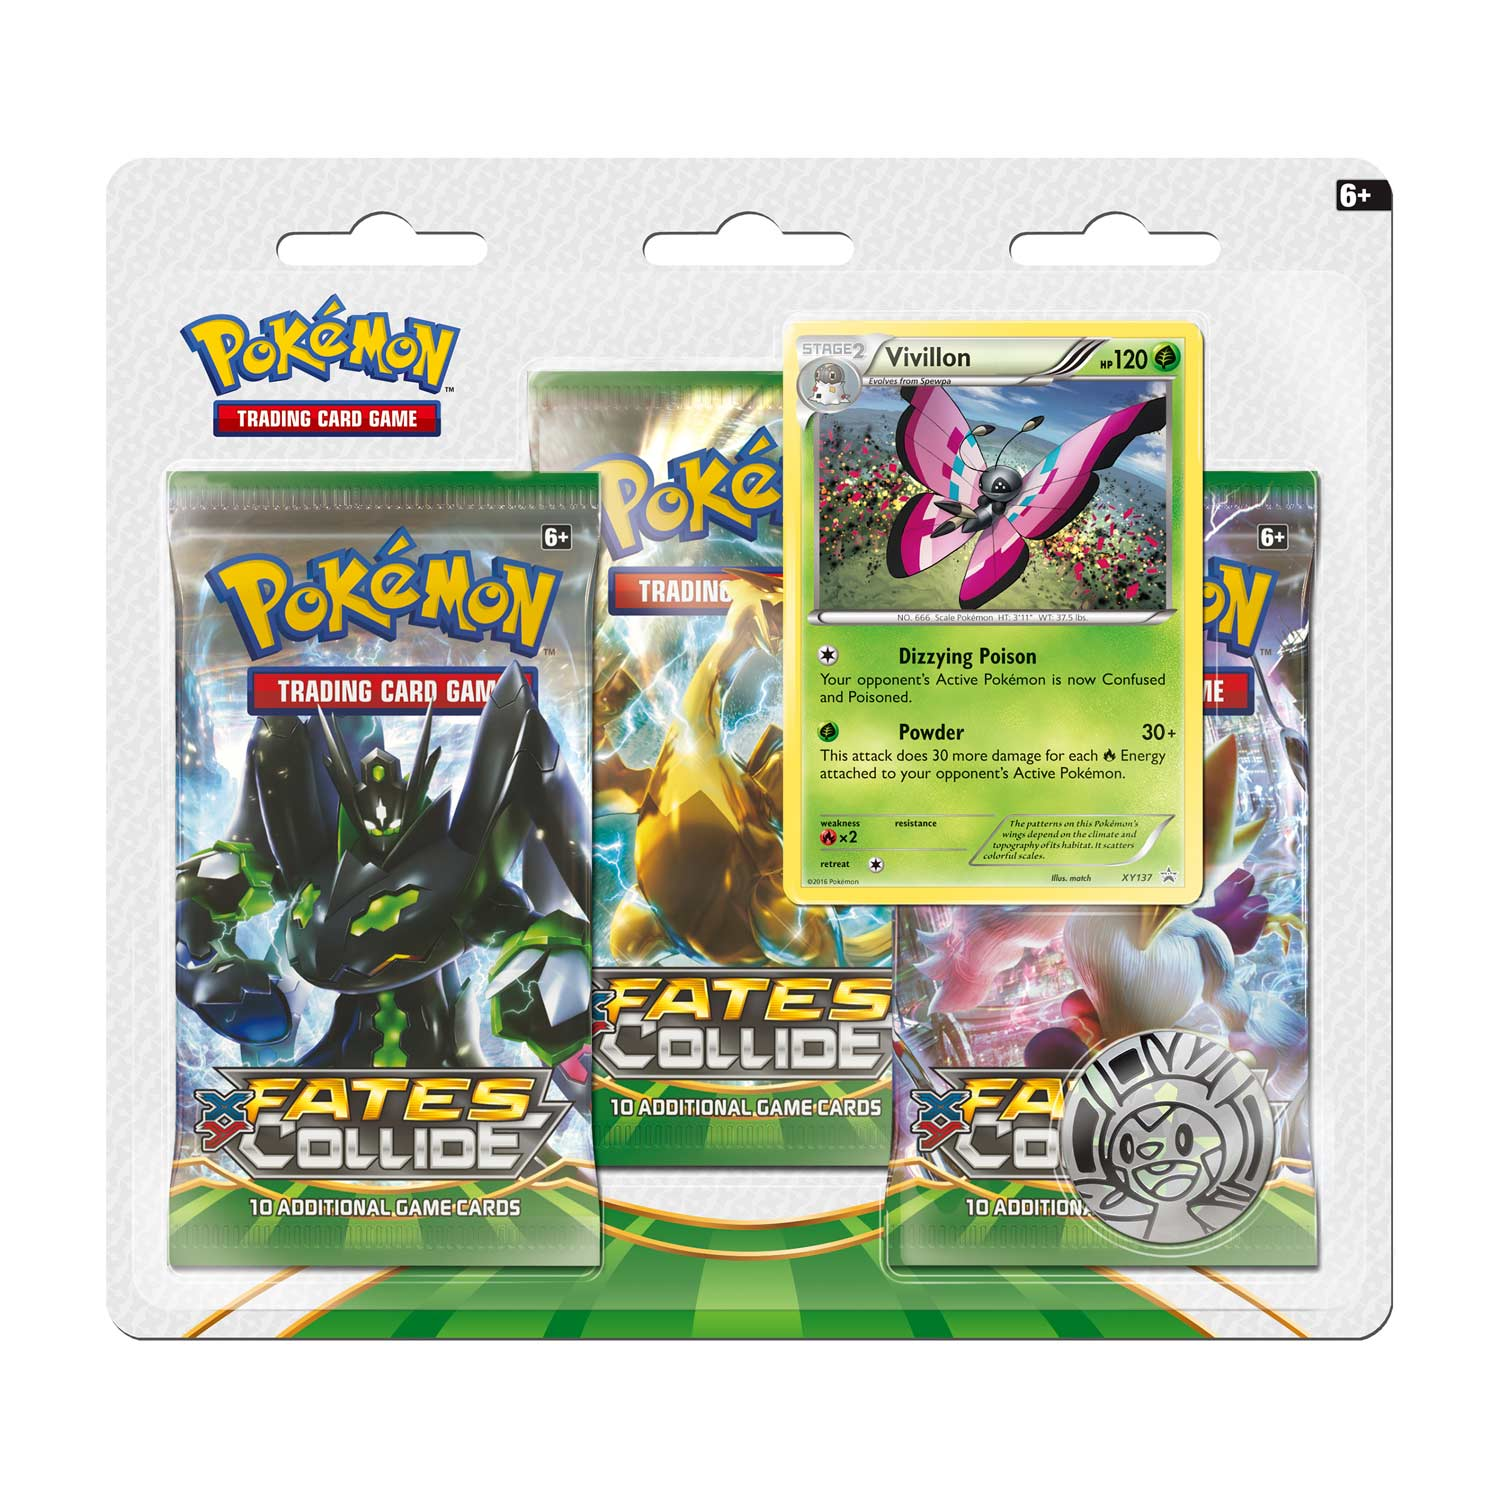 Fates Collide 3-Pack Blister - Vivillion | Card Merchant NZ